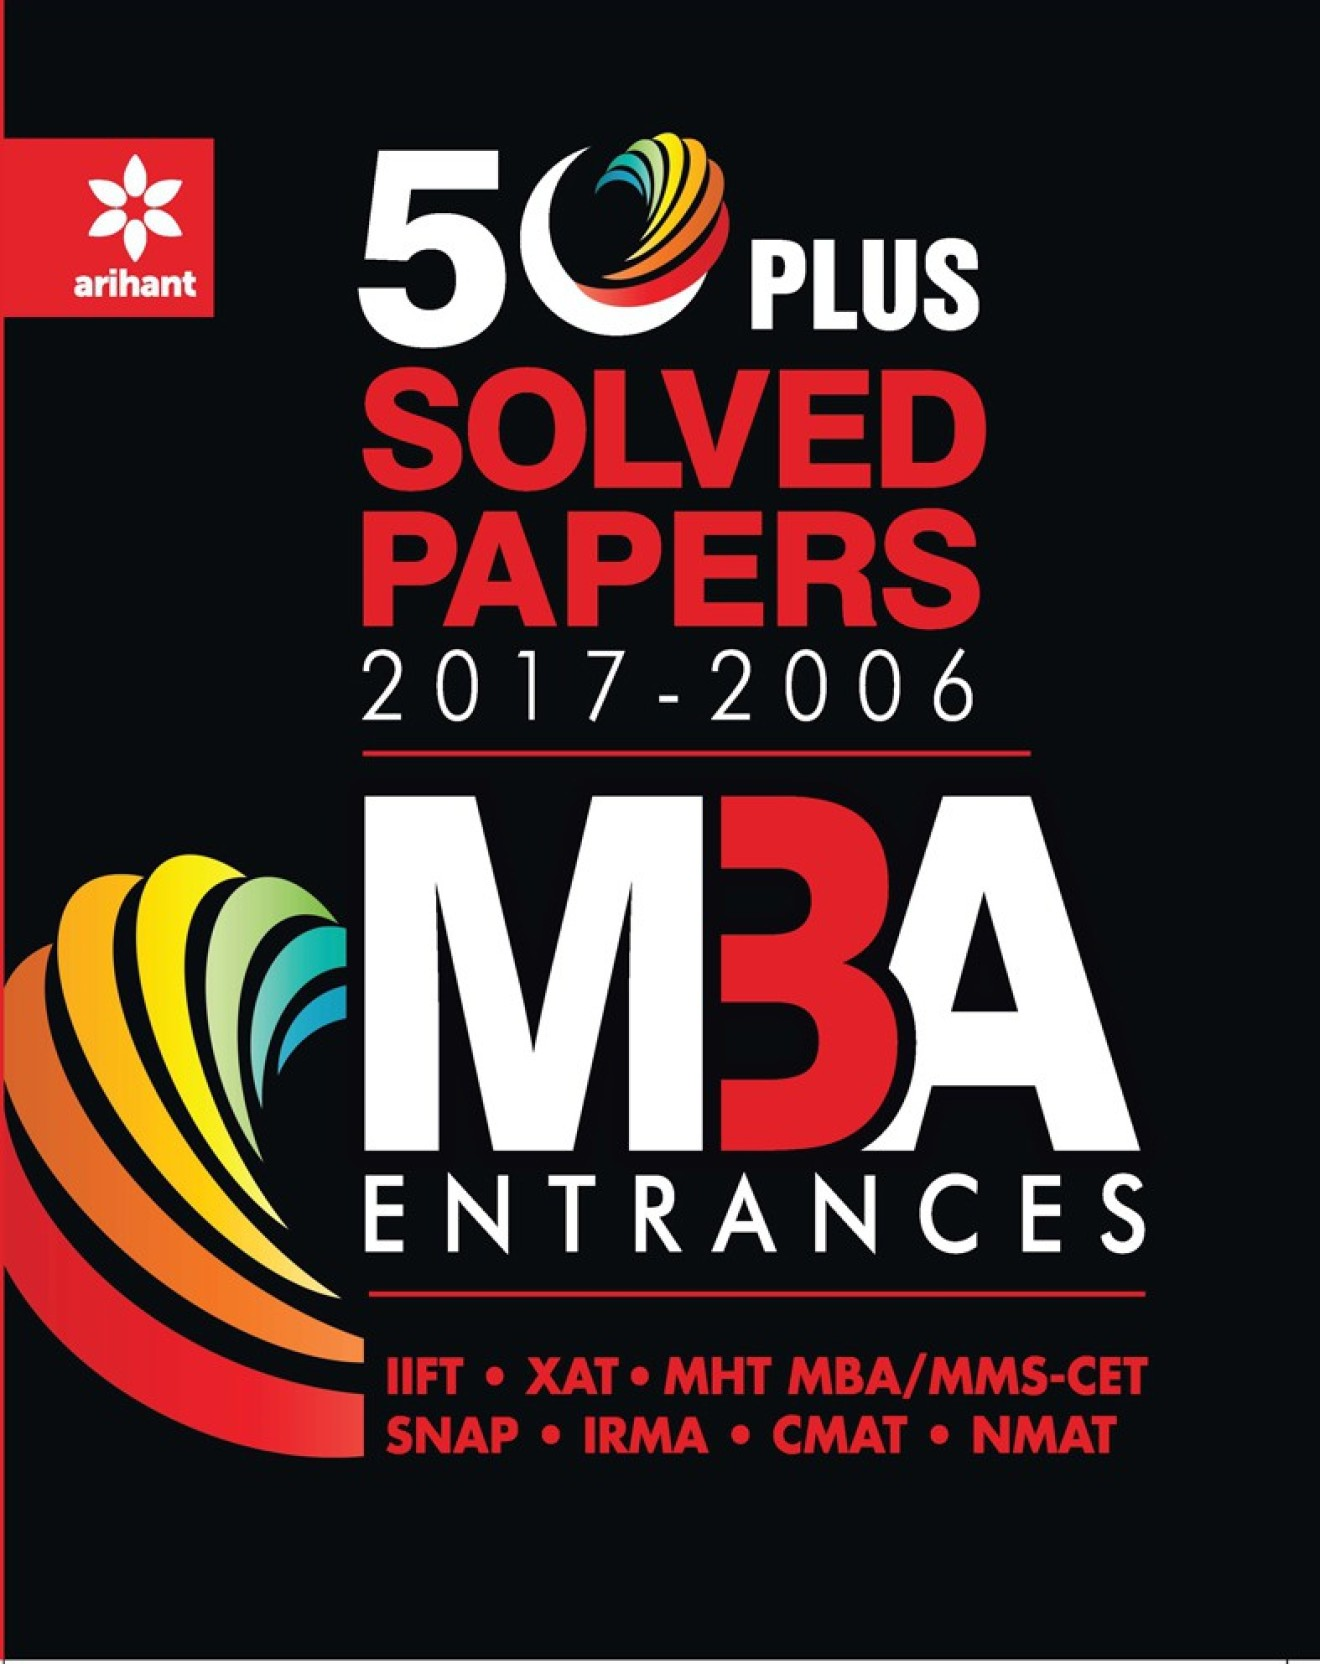 50 Plus Solved Papers Mba Entrances Buy 50 Plus Solved